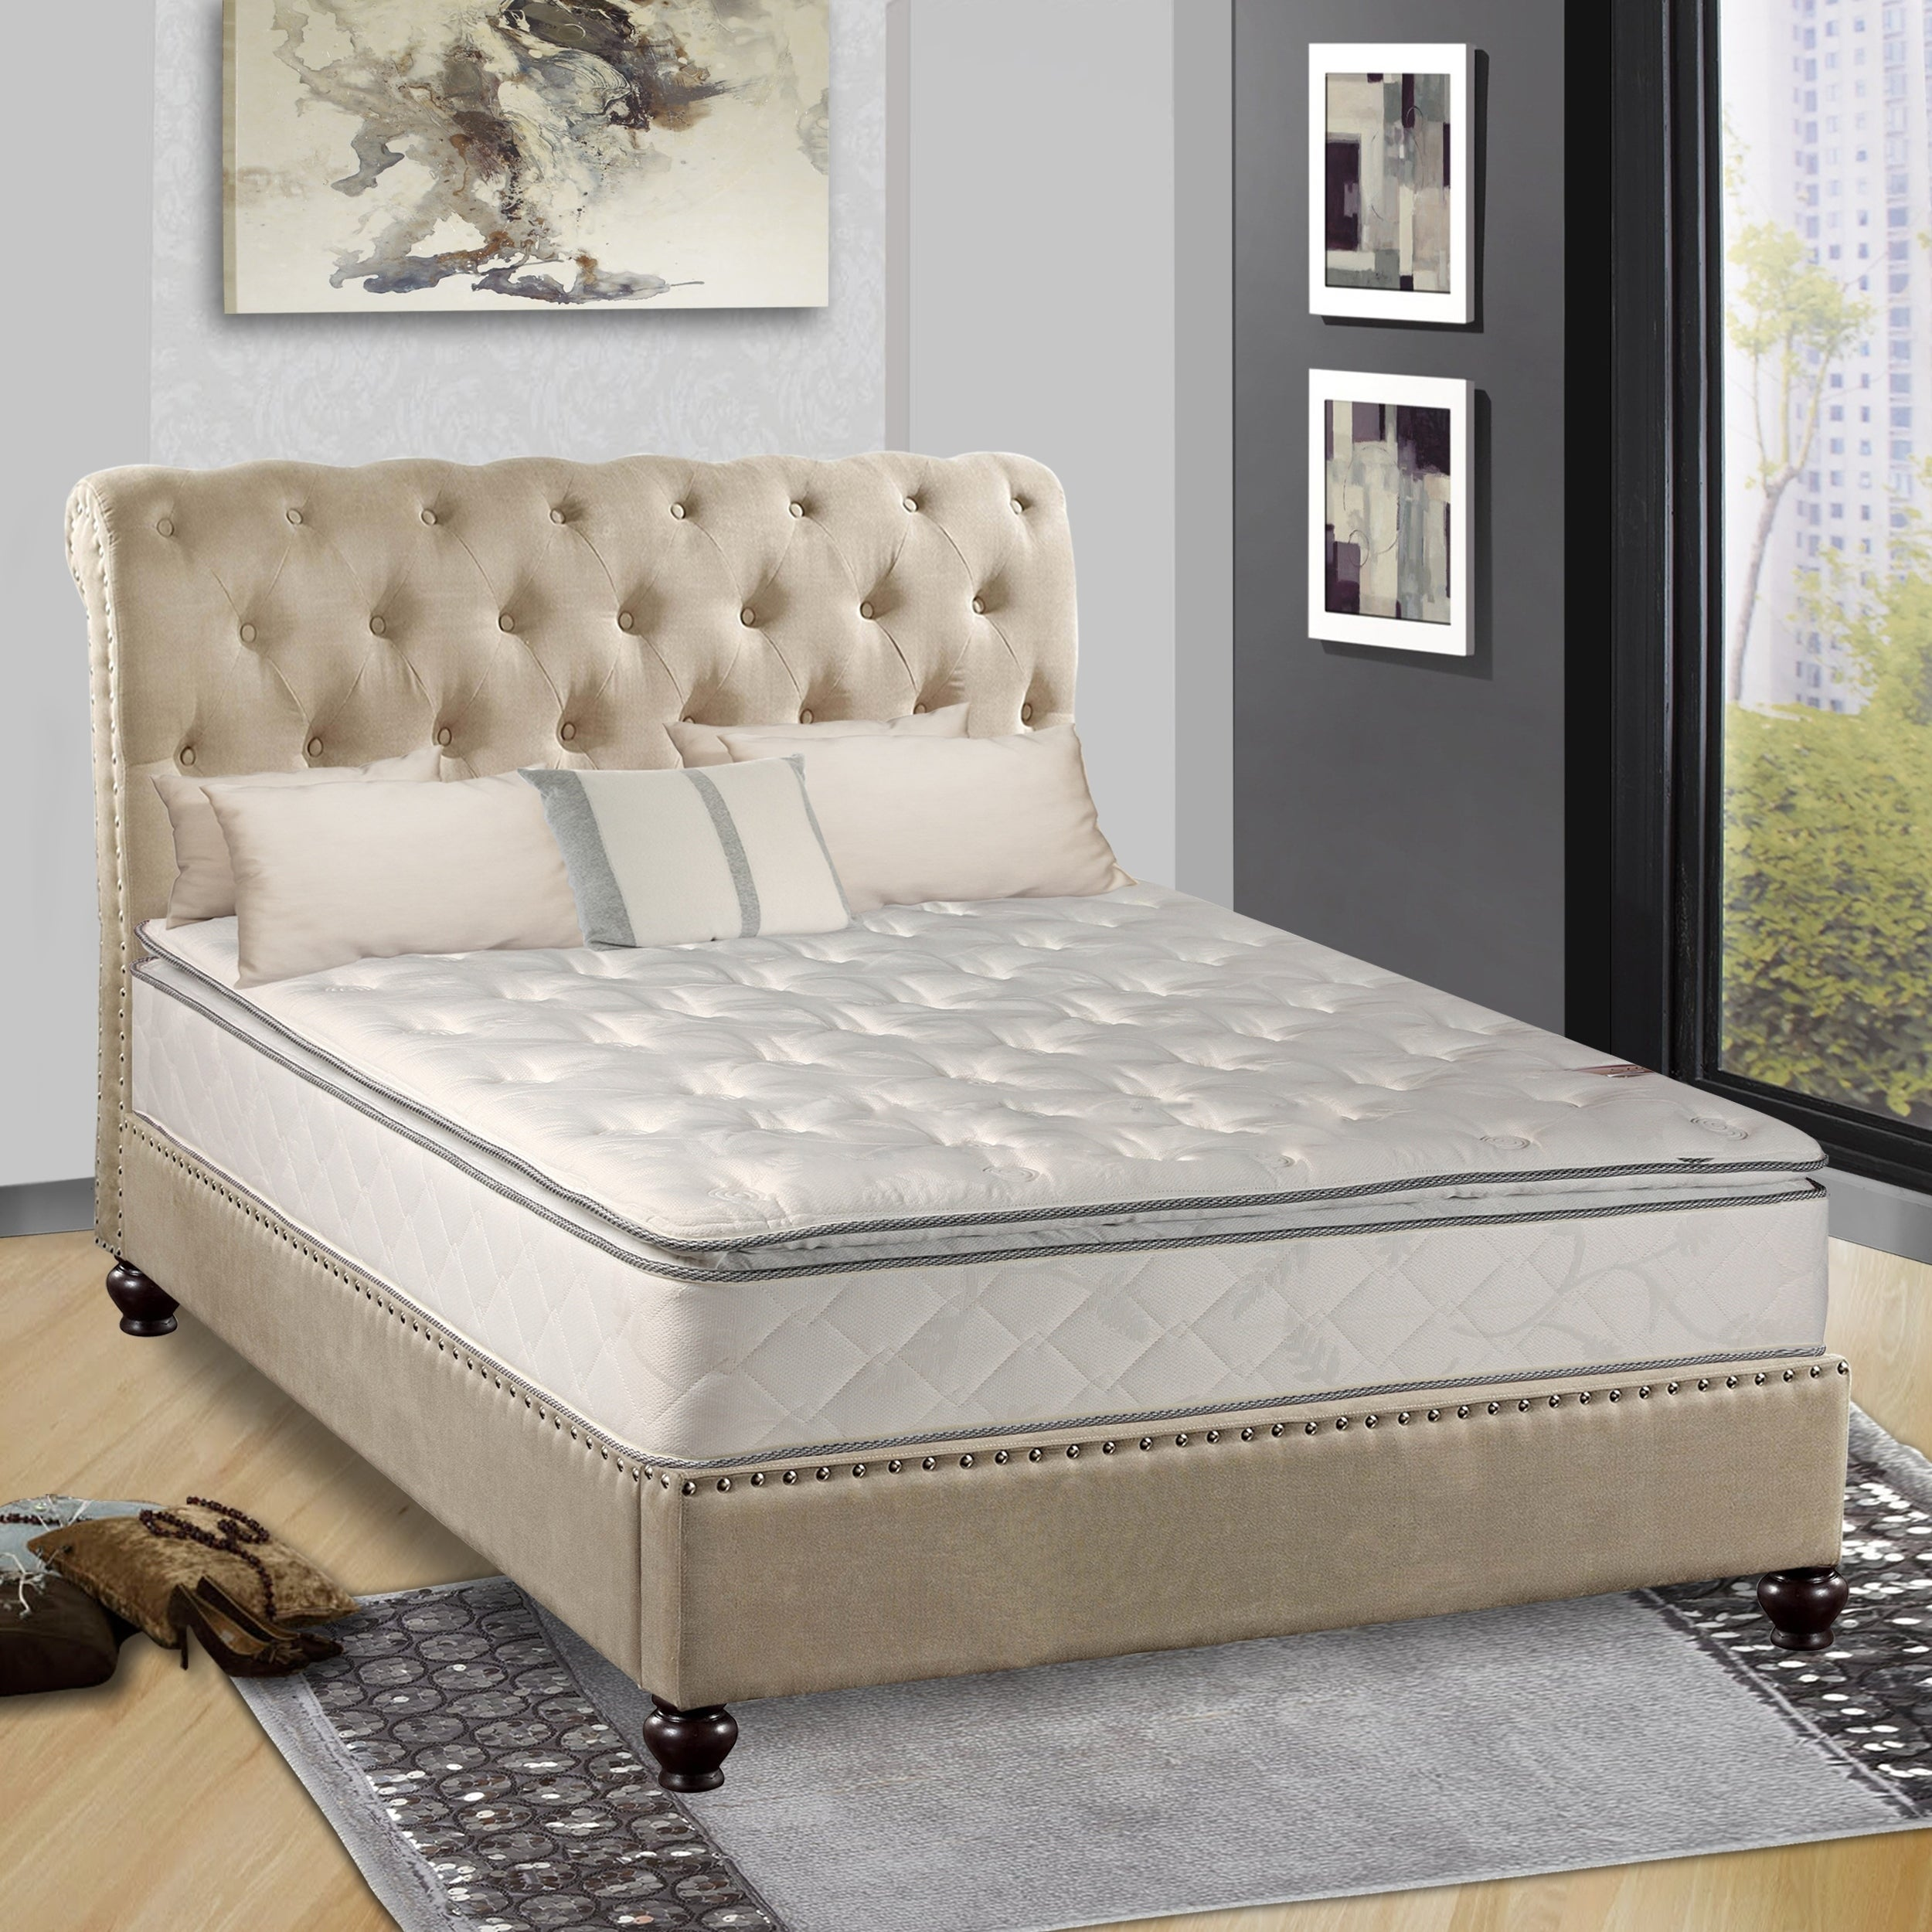 continental sleep medium plush pillowtop orthopedic type mattress